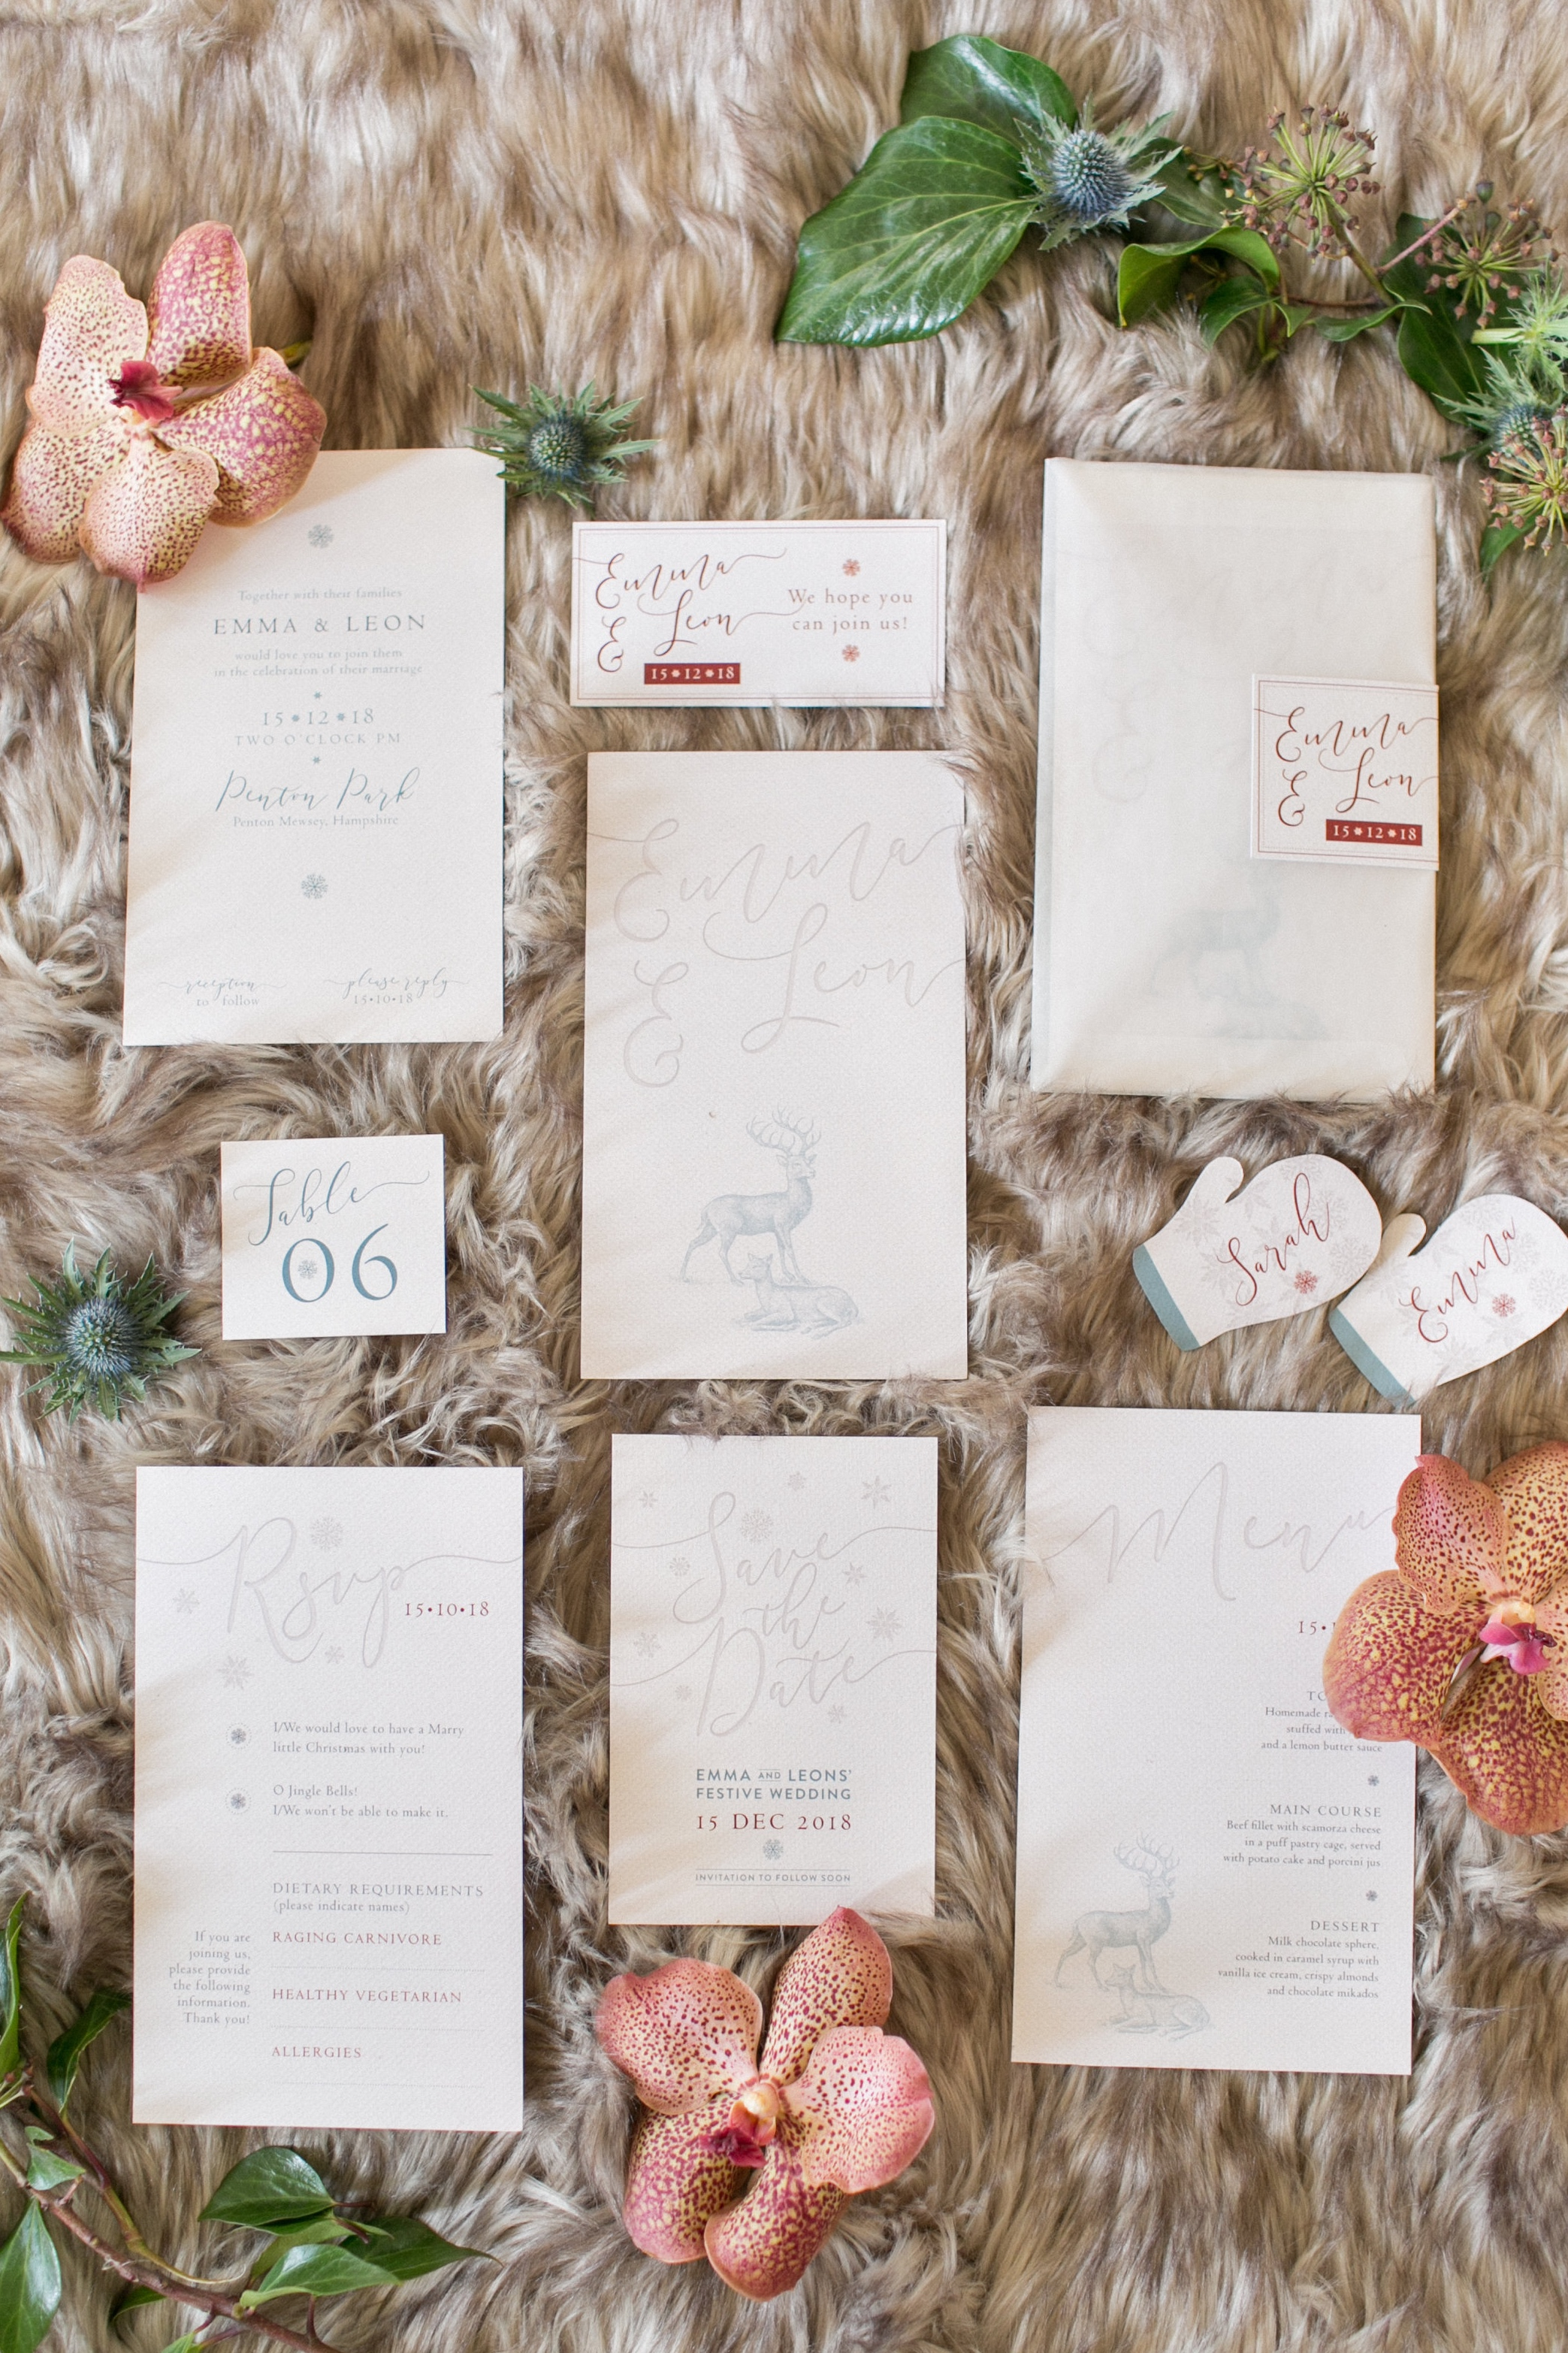 Baby-Its-Cold-Outside-stationery-Louise+Richardson.jpg